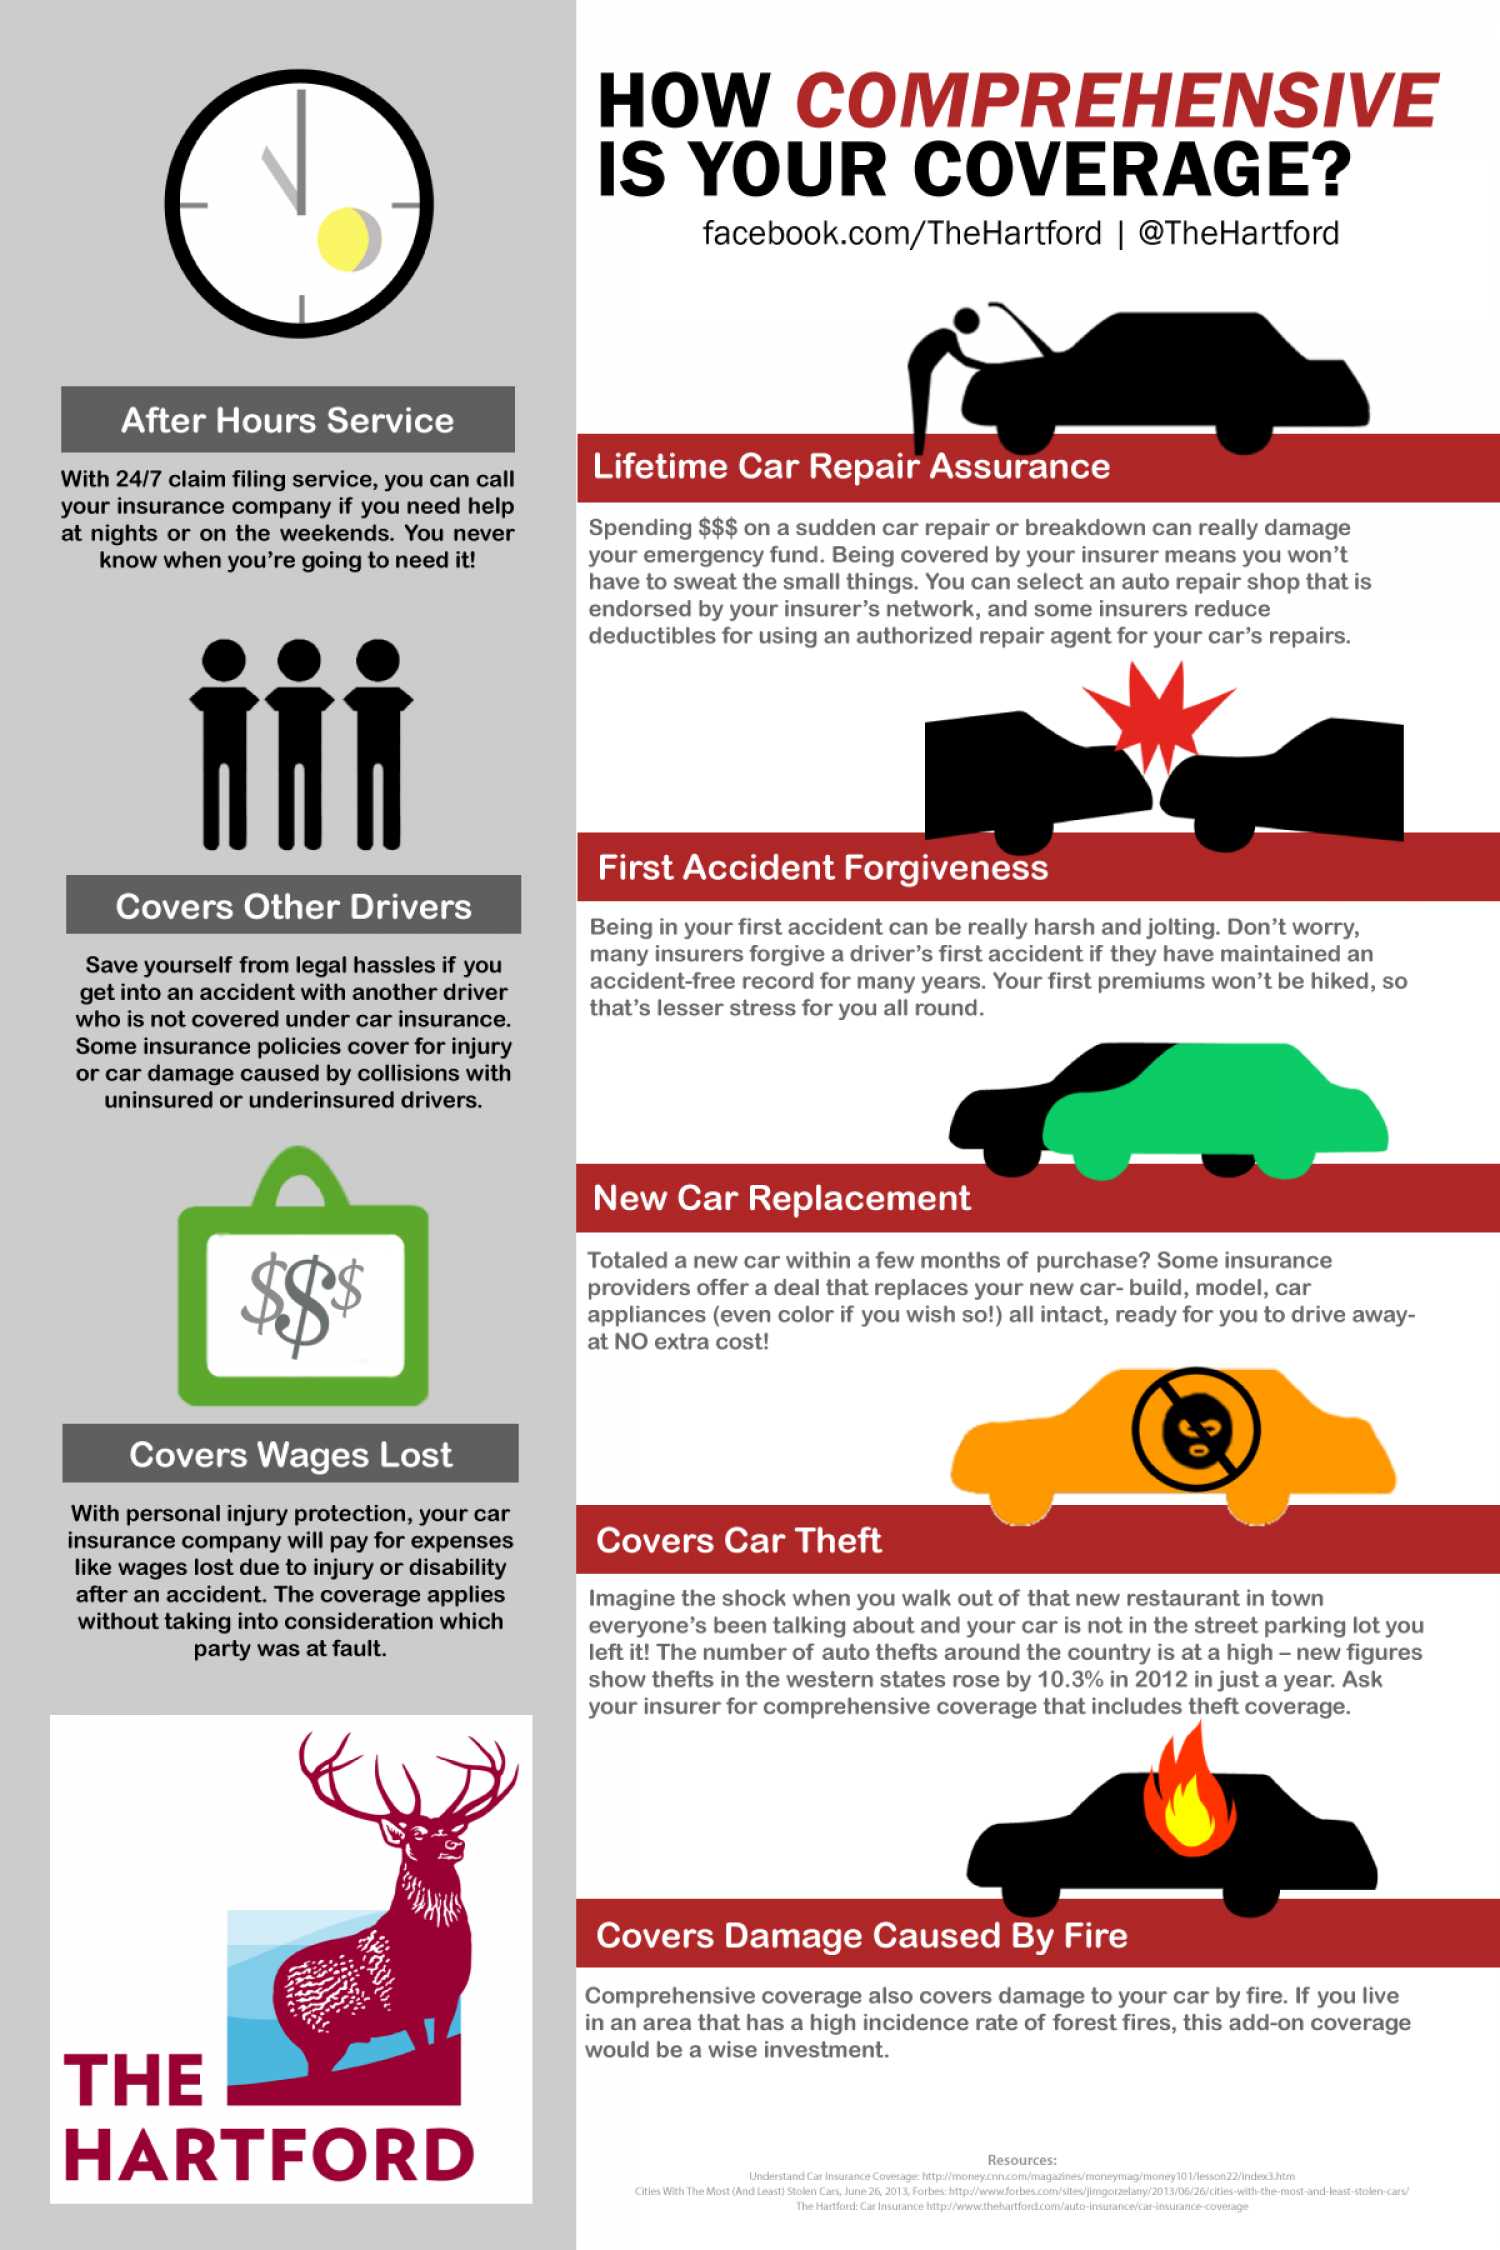 How Comprehensive is Your Coverage? Infographic